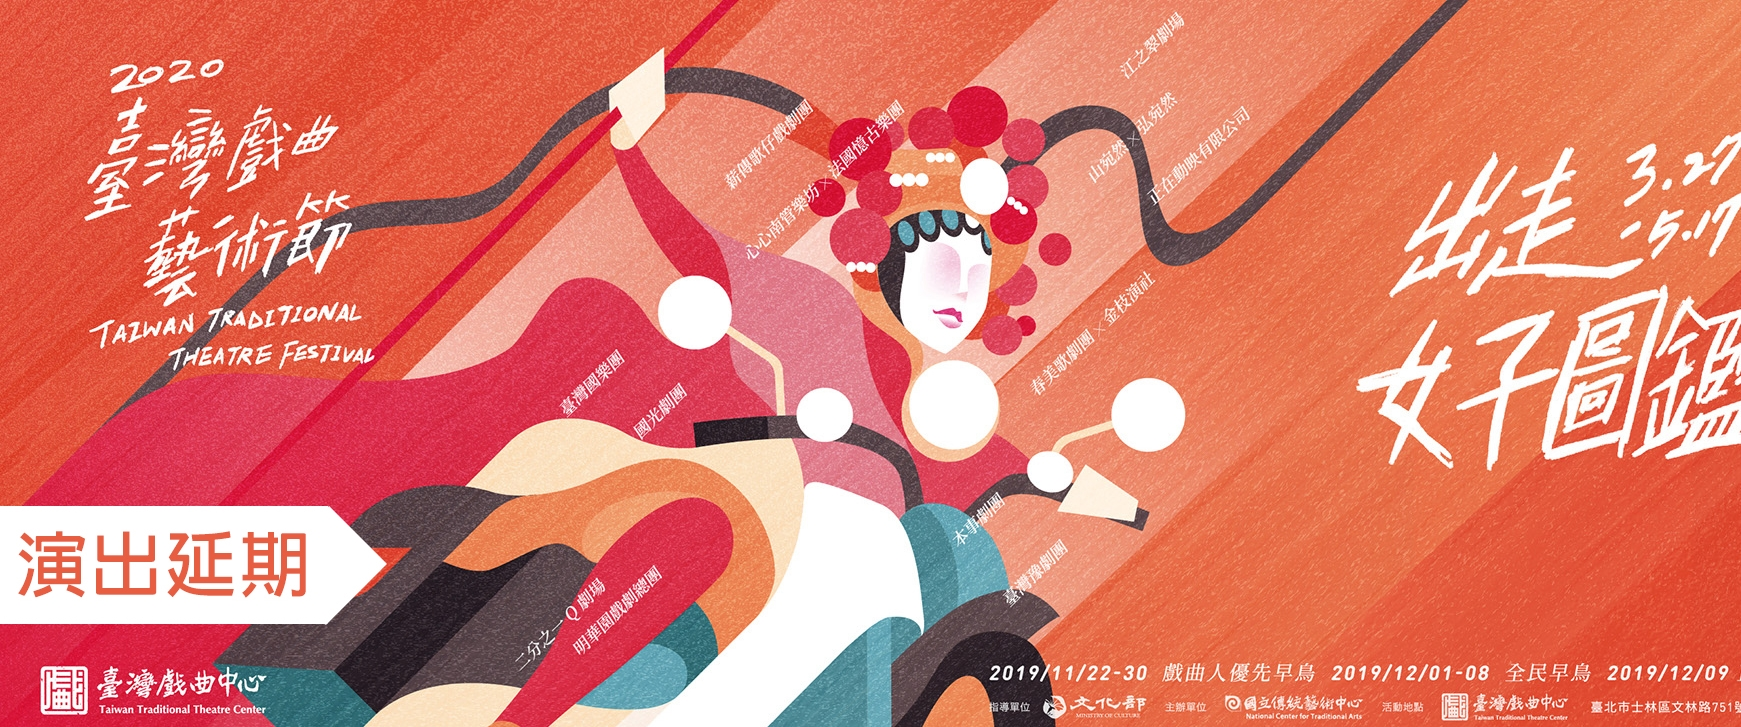 March's Taiwan Traditional Theatre Festival now suspendedopennewwindow